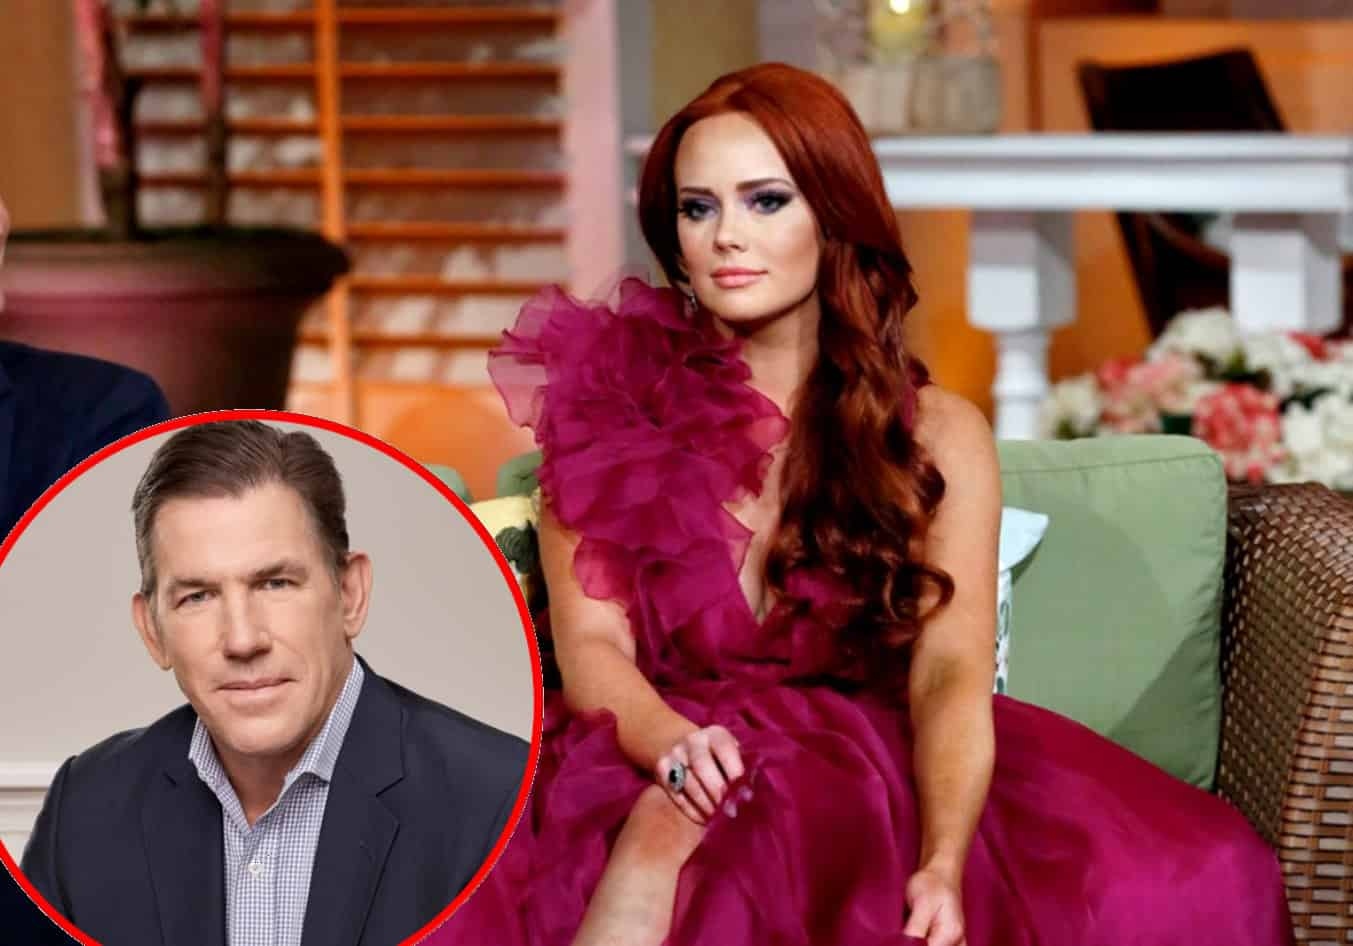 Kathryn Dennis Breaks Silence After Losing Custody of Kids to Thomas Ravenel as Southern Charm Star Suggests She Was Manipulated by the Legal System Amid Custody Battle